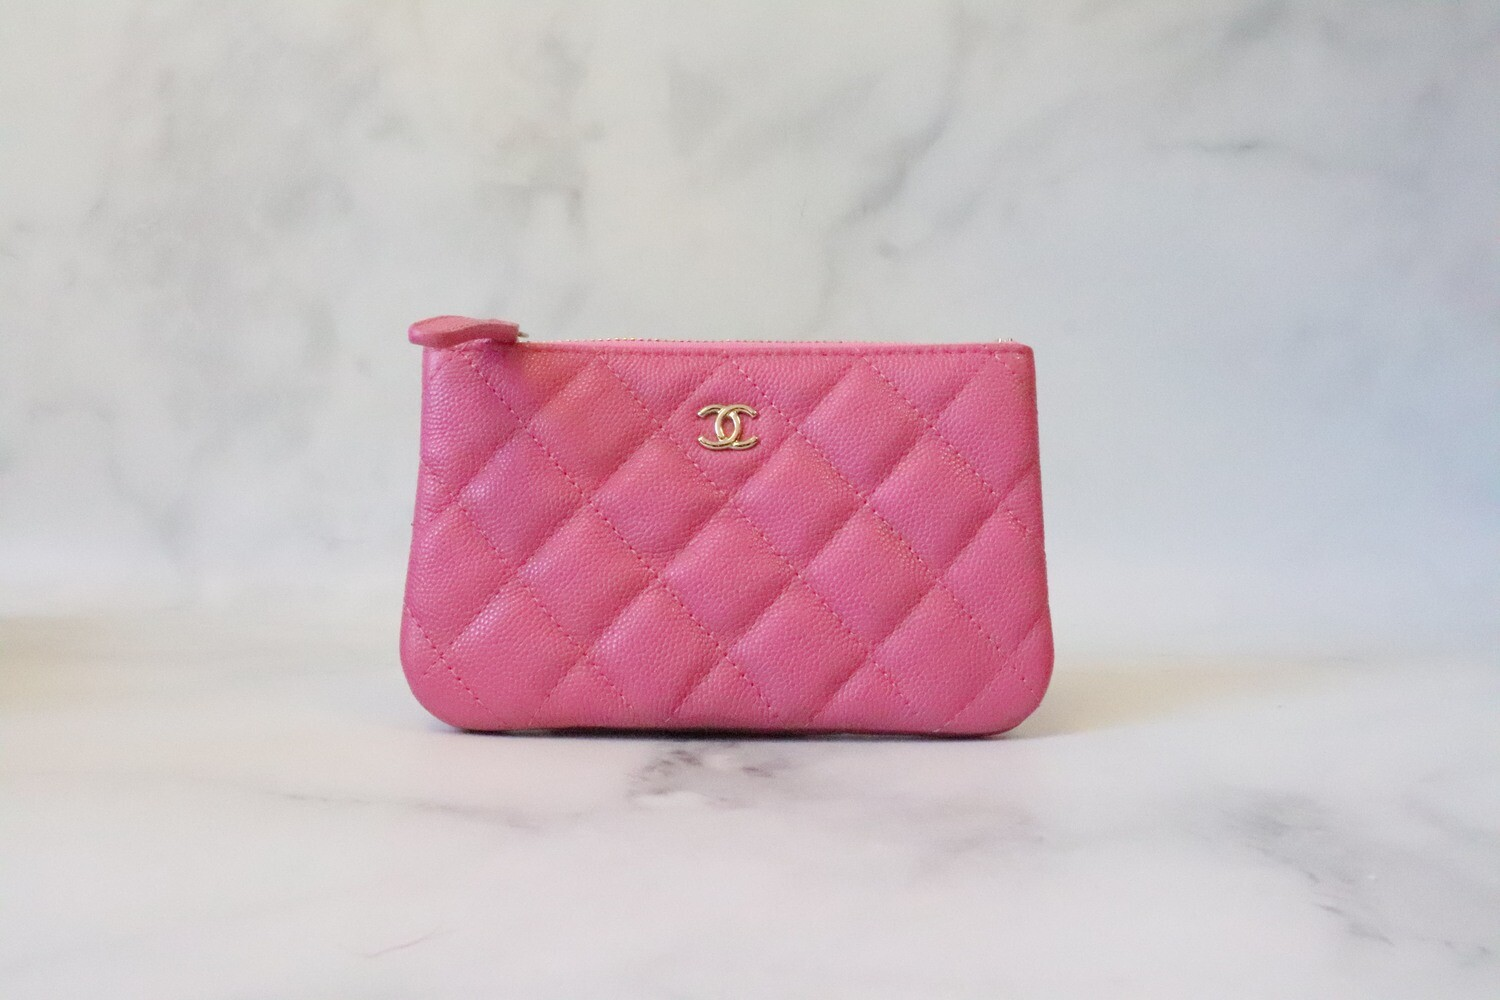 Chanel SLG Mini O Case 20S Pink Caviar Leather, Light Gold Hardware, New in Box